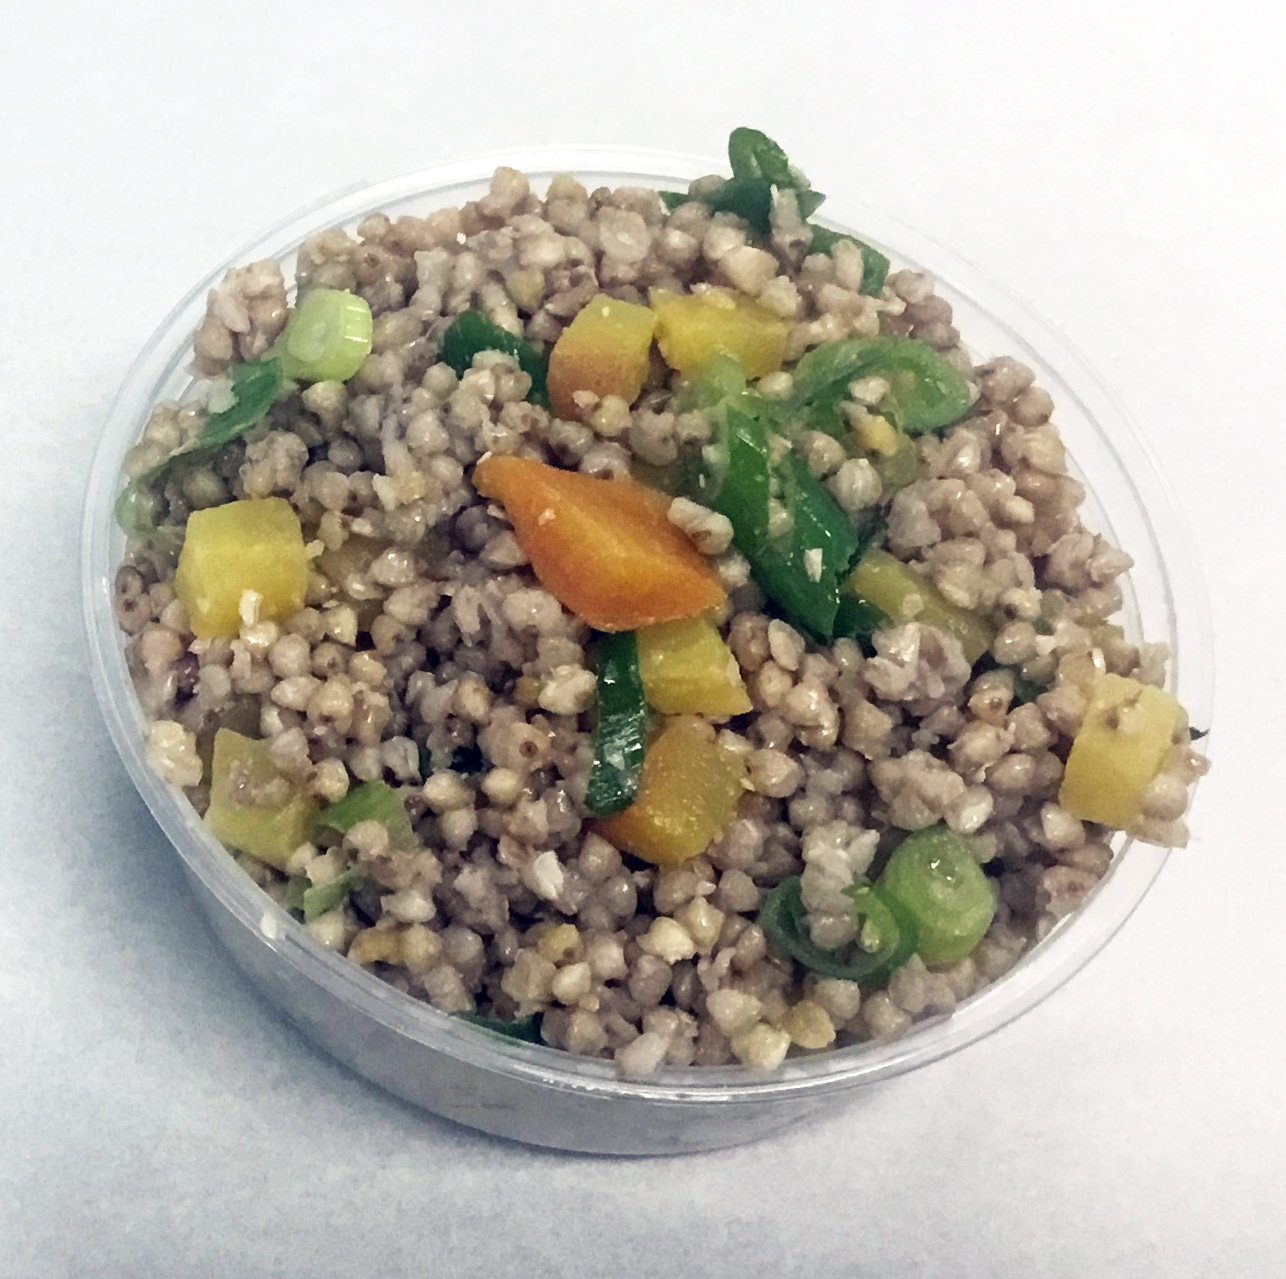 Buckwheat with golden beets and parsley.